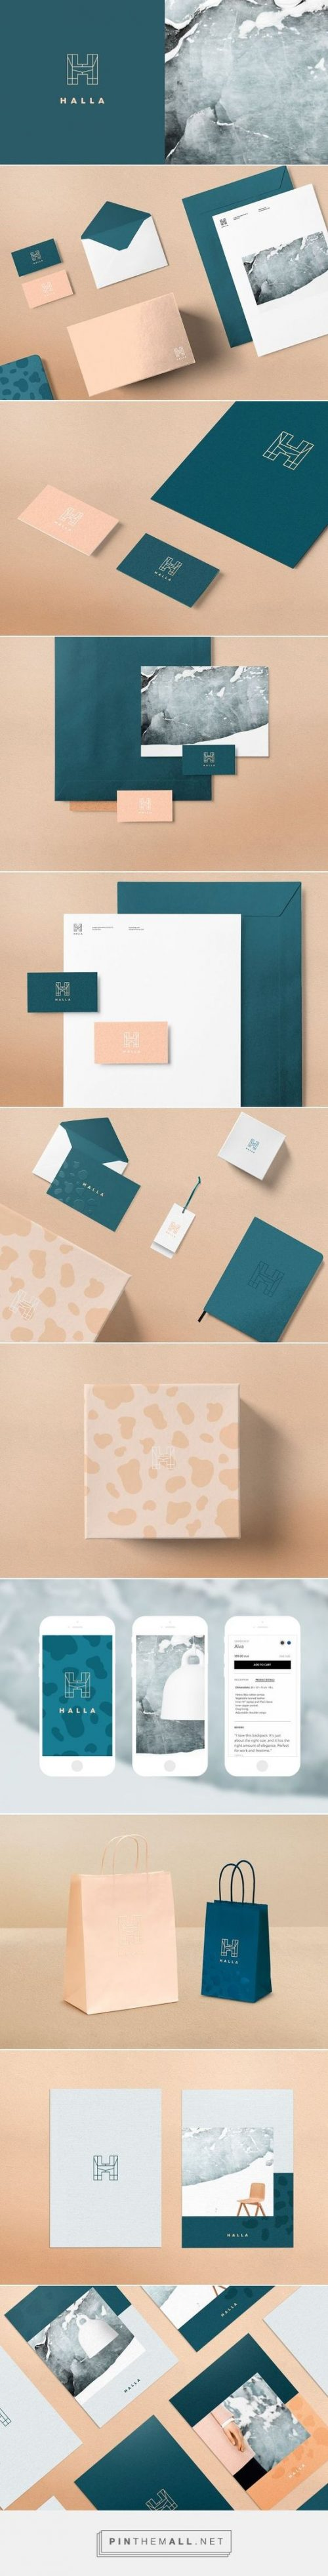 Halla Fashion and Furniture Shop Branding by Tiia Vahla | Fivestar Branding Agency – Design and  ...